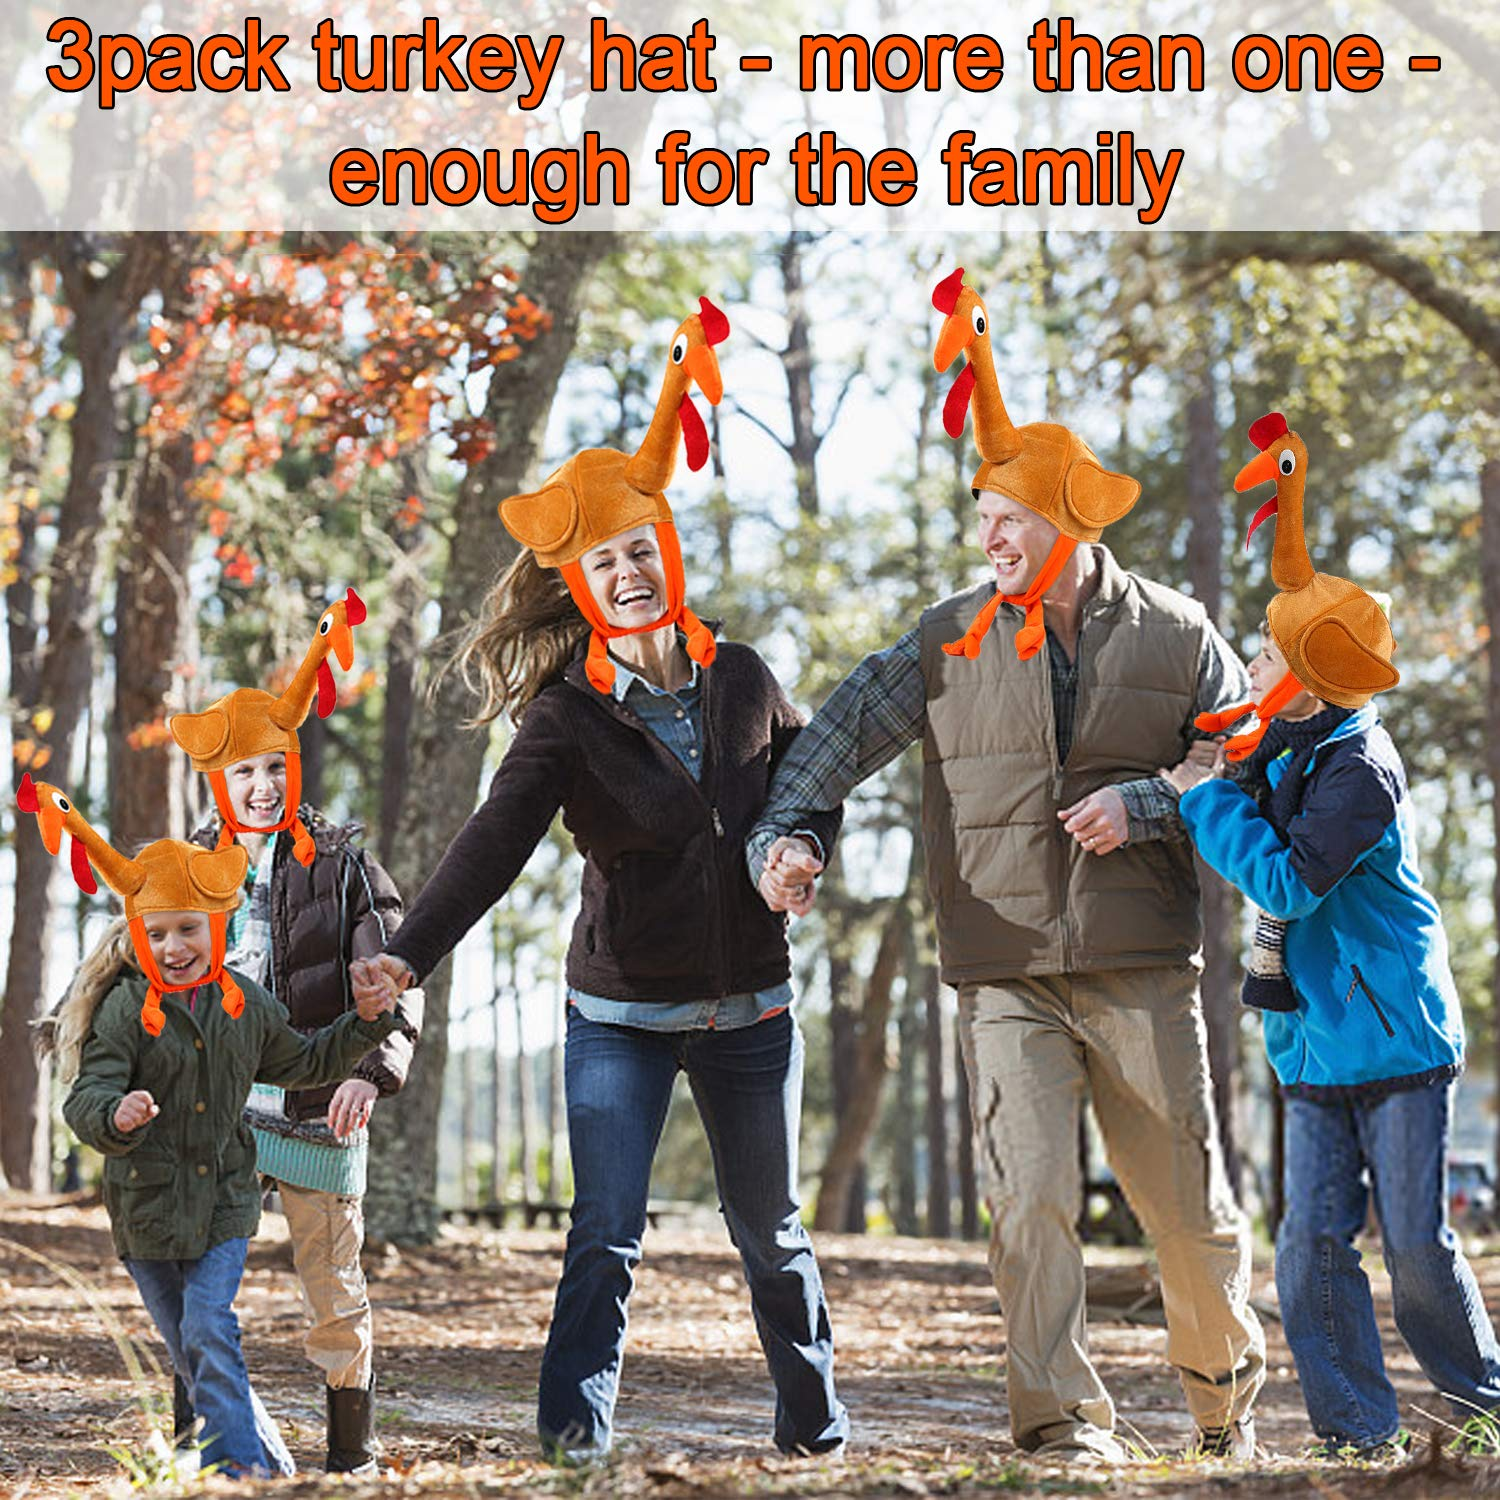 3 Pack Turkey Hats for Kids Woman Man Thanksgiving Hat With Head Thanksgiving Party Favors Supplies Fun Plump Turkey Hat Legs And Tail Fancy Dress Accessory Trot Accessory Toy for Holiday Gift